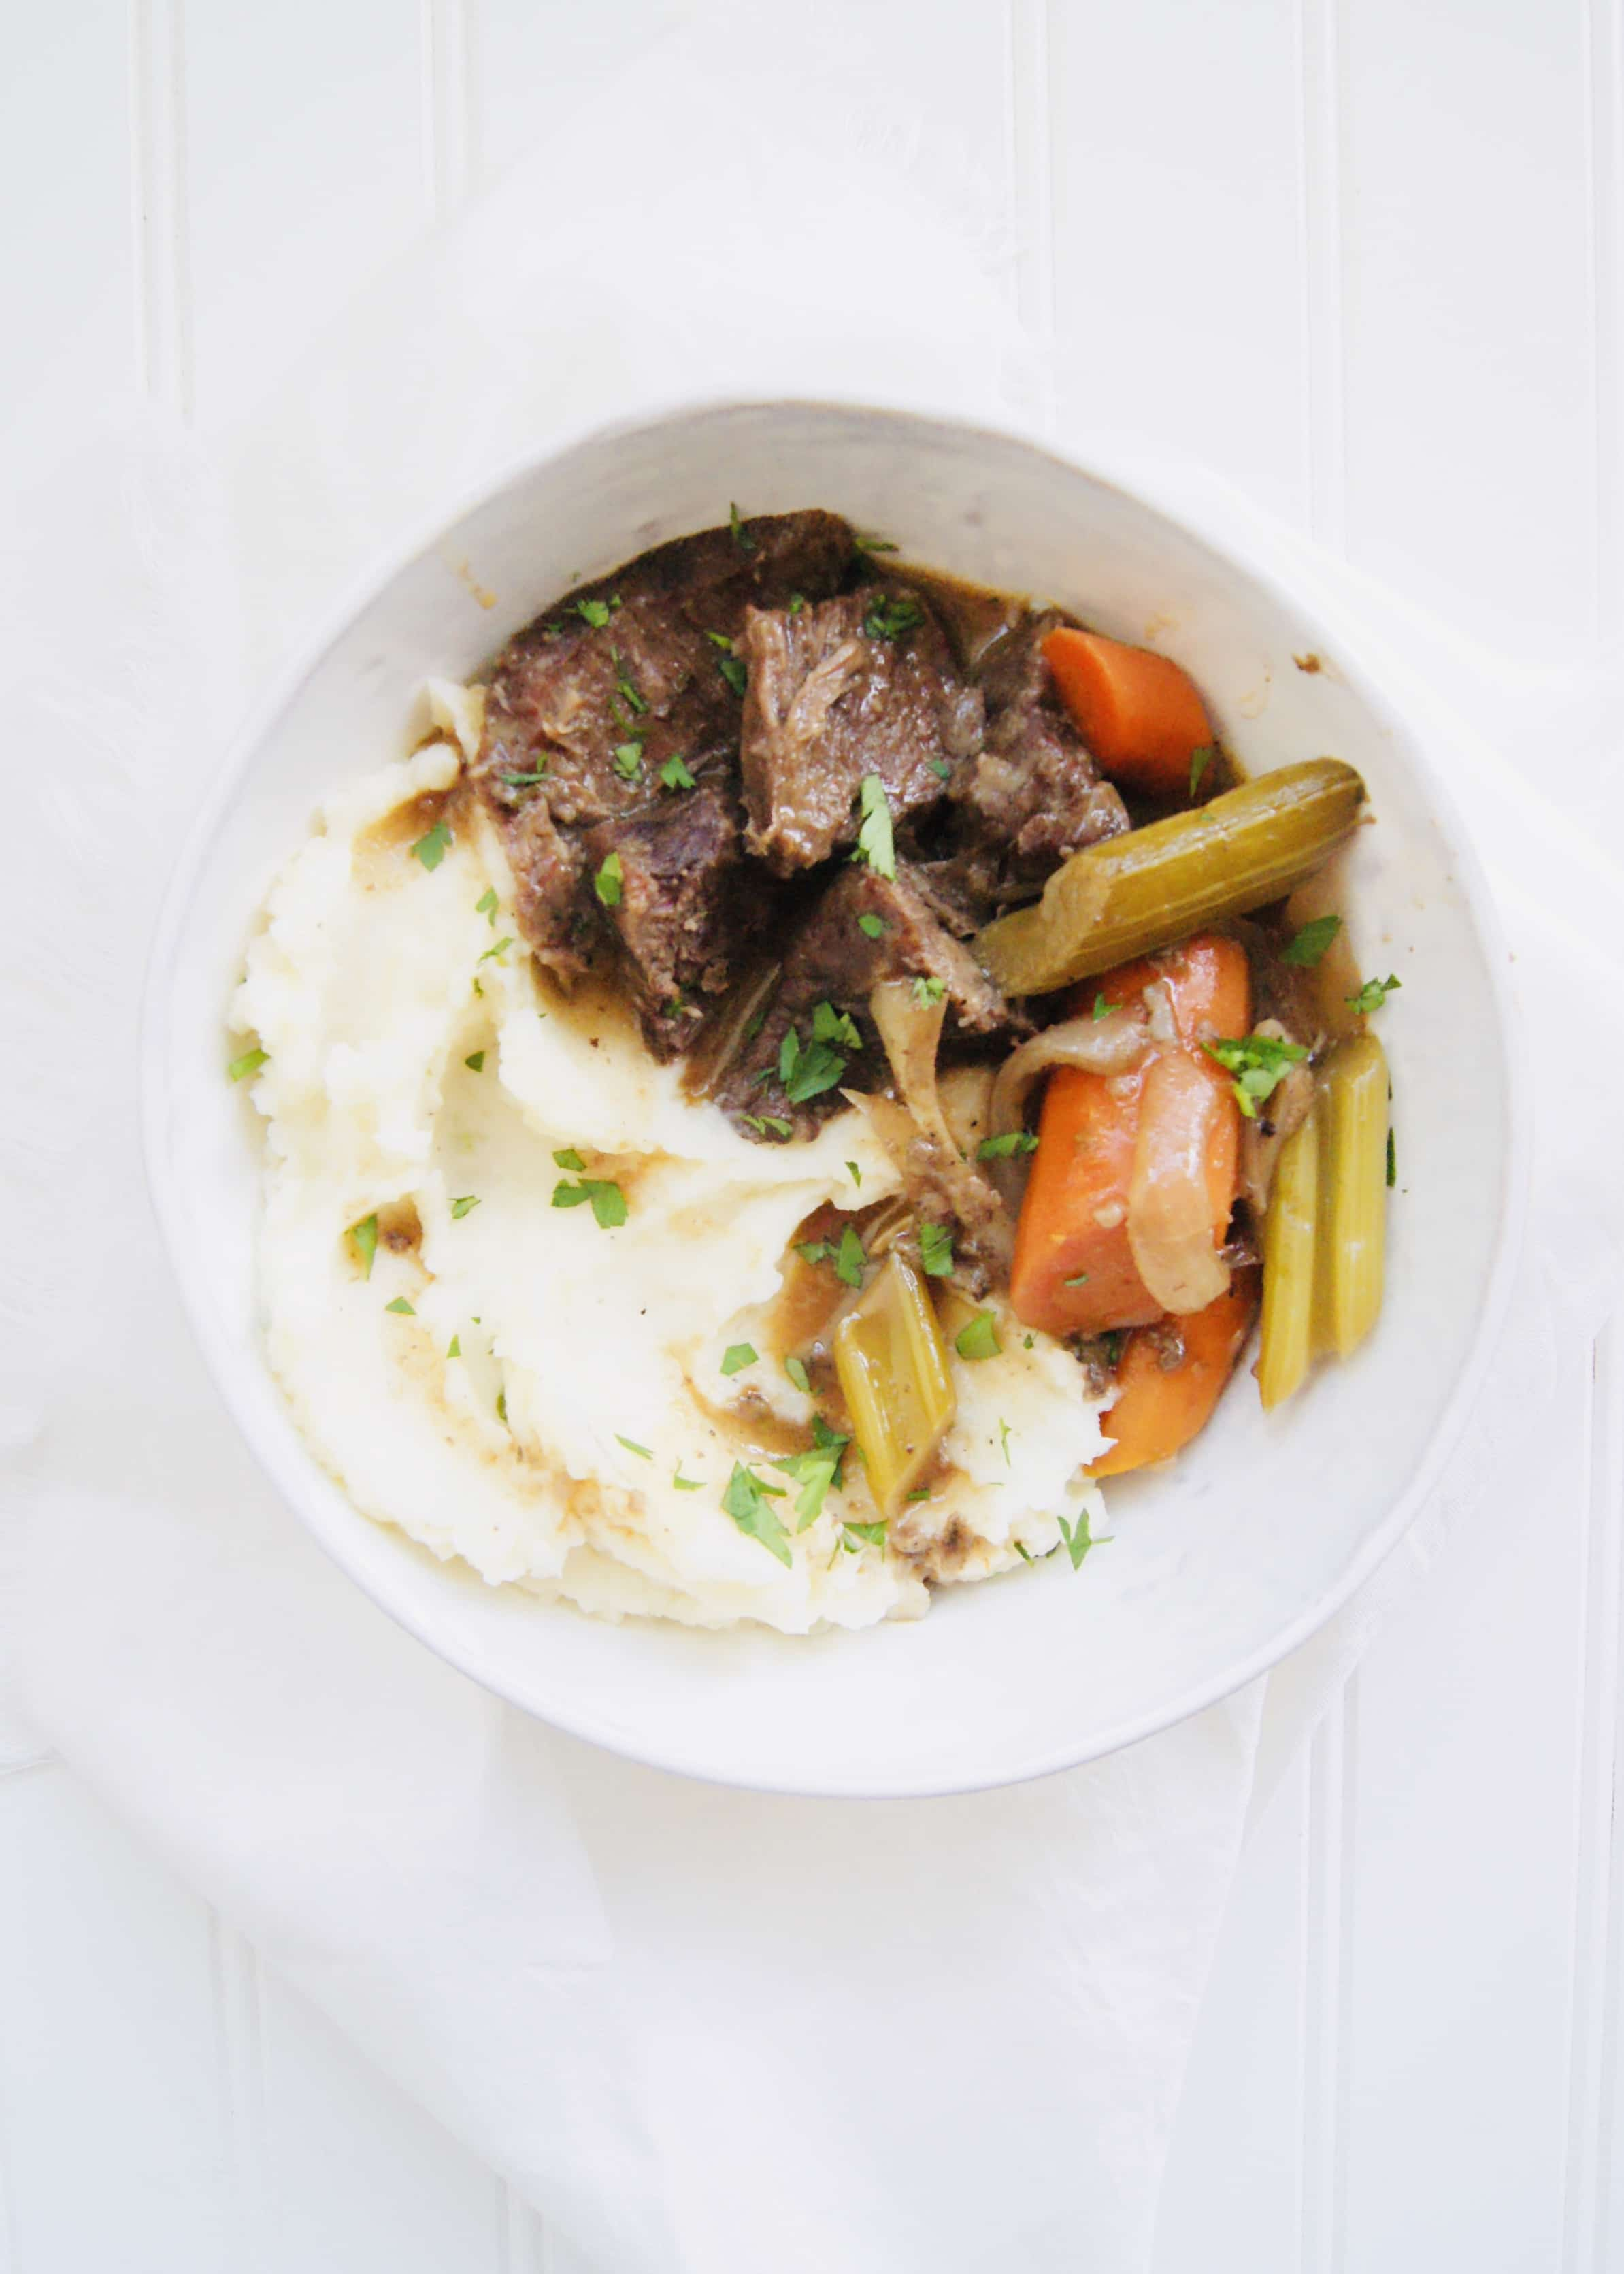 The Best Slow Cooker Pot Roast with an easy, but delicious homemade gravy. Turn a chuck roast into a comforting, Sunday dinner. Recipe at KathleensCravings.com #kathleenscravings #slowcookerroast #potroast #chuckroast #sundaydinner #slowcookerdinner #slowcookermeal #slowcooker #slowcookersunday